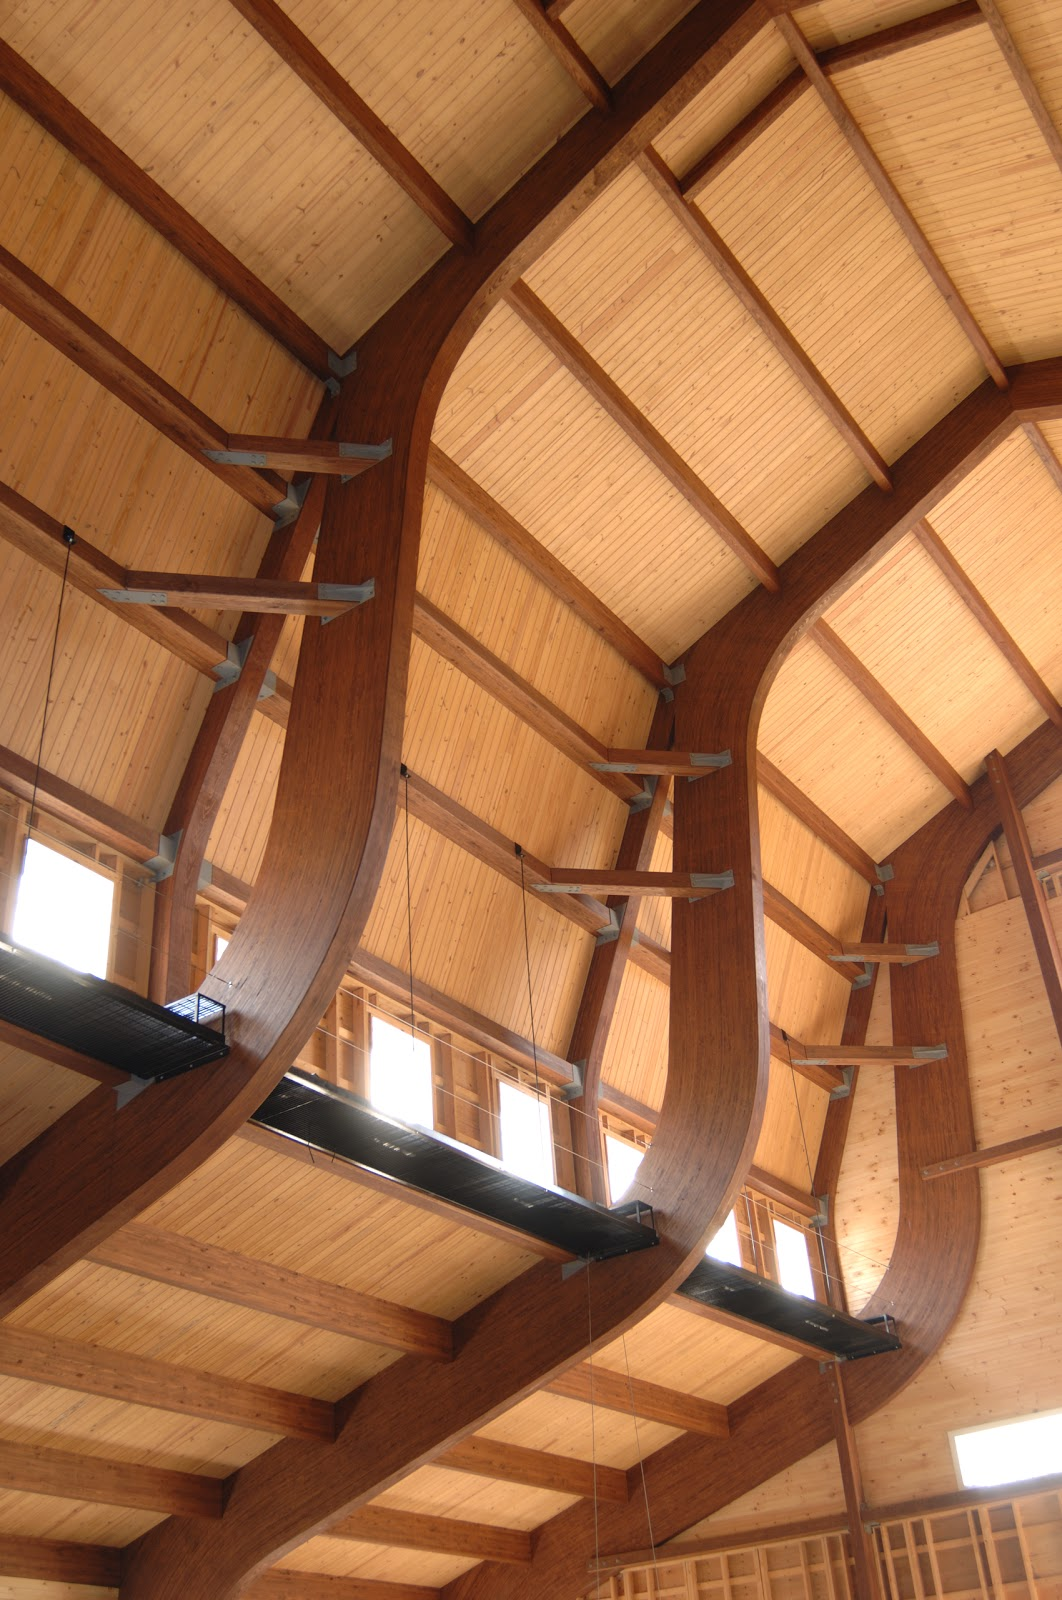 Choose glulam by una lam over other engineered wood